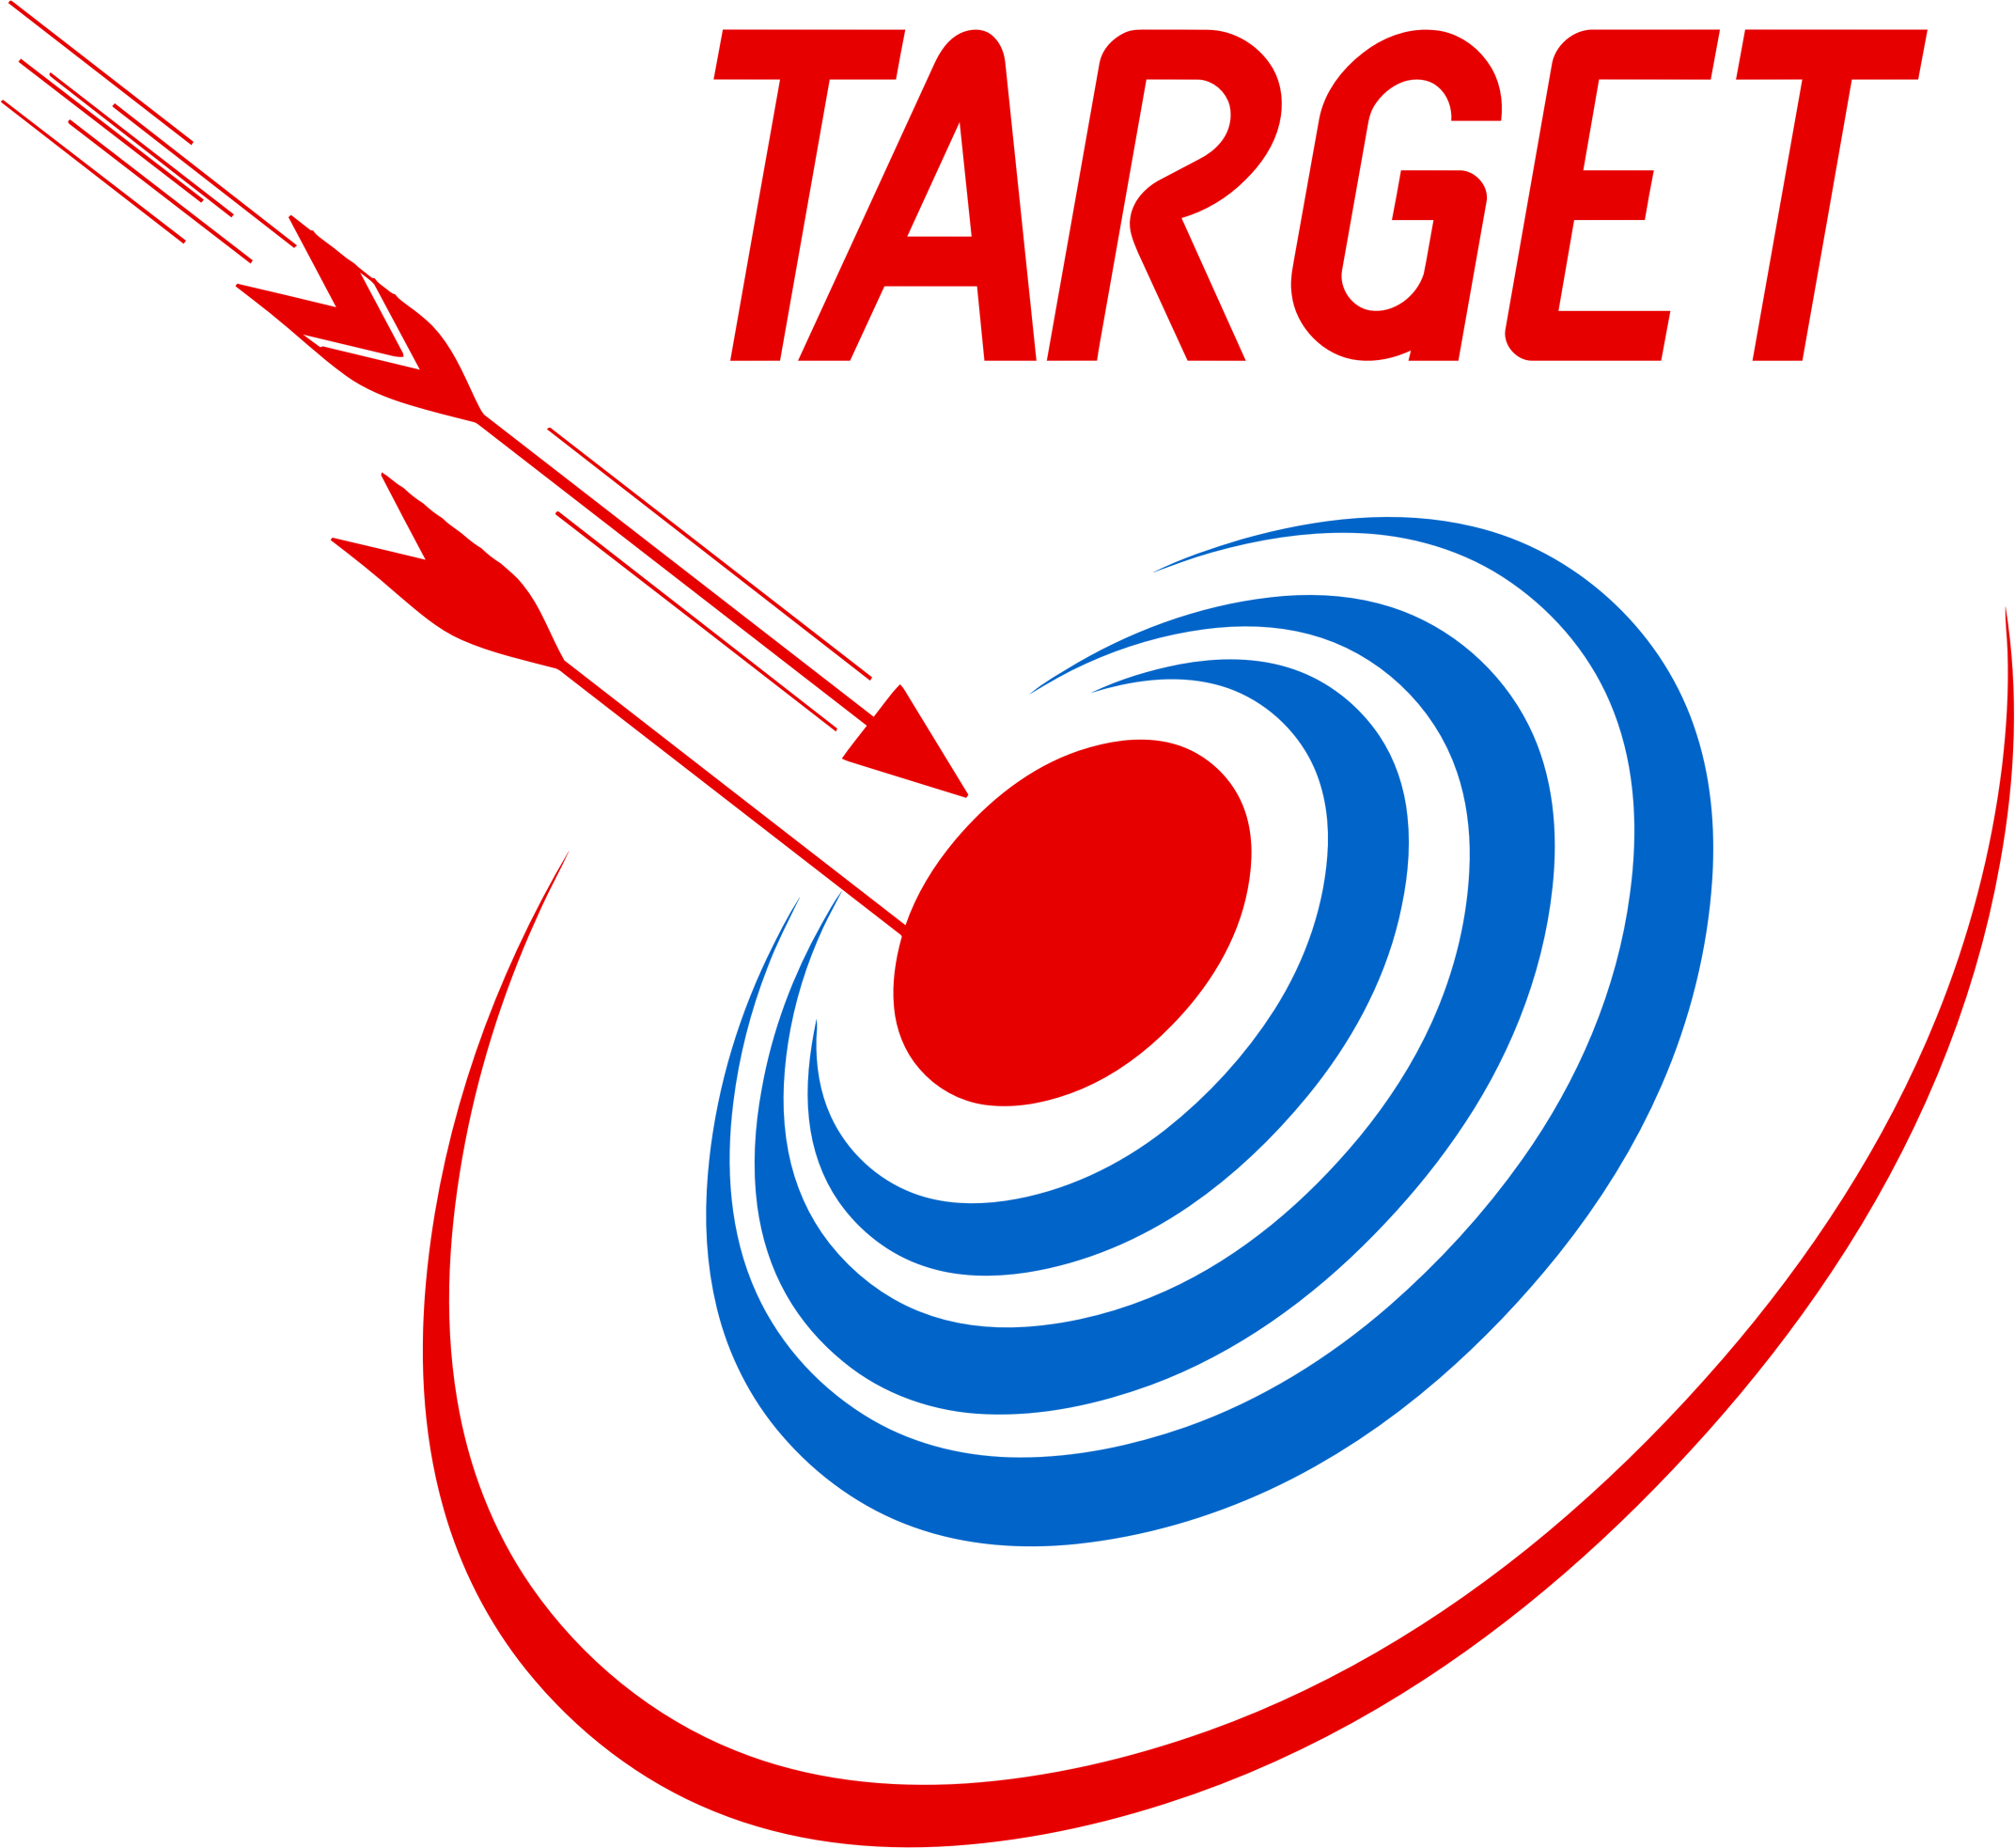 2144x1966 Target Clipart Our